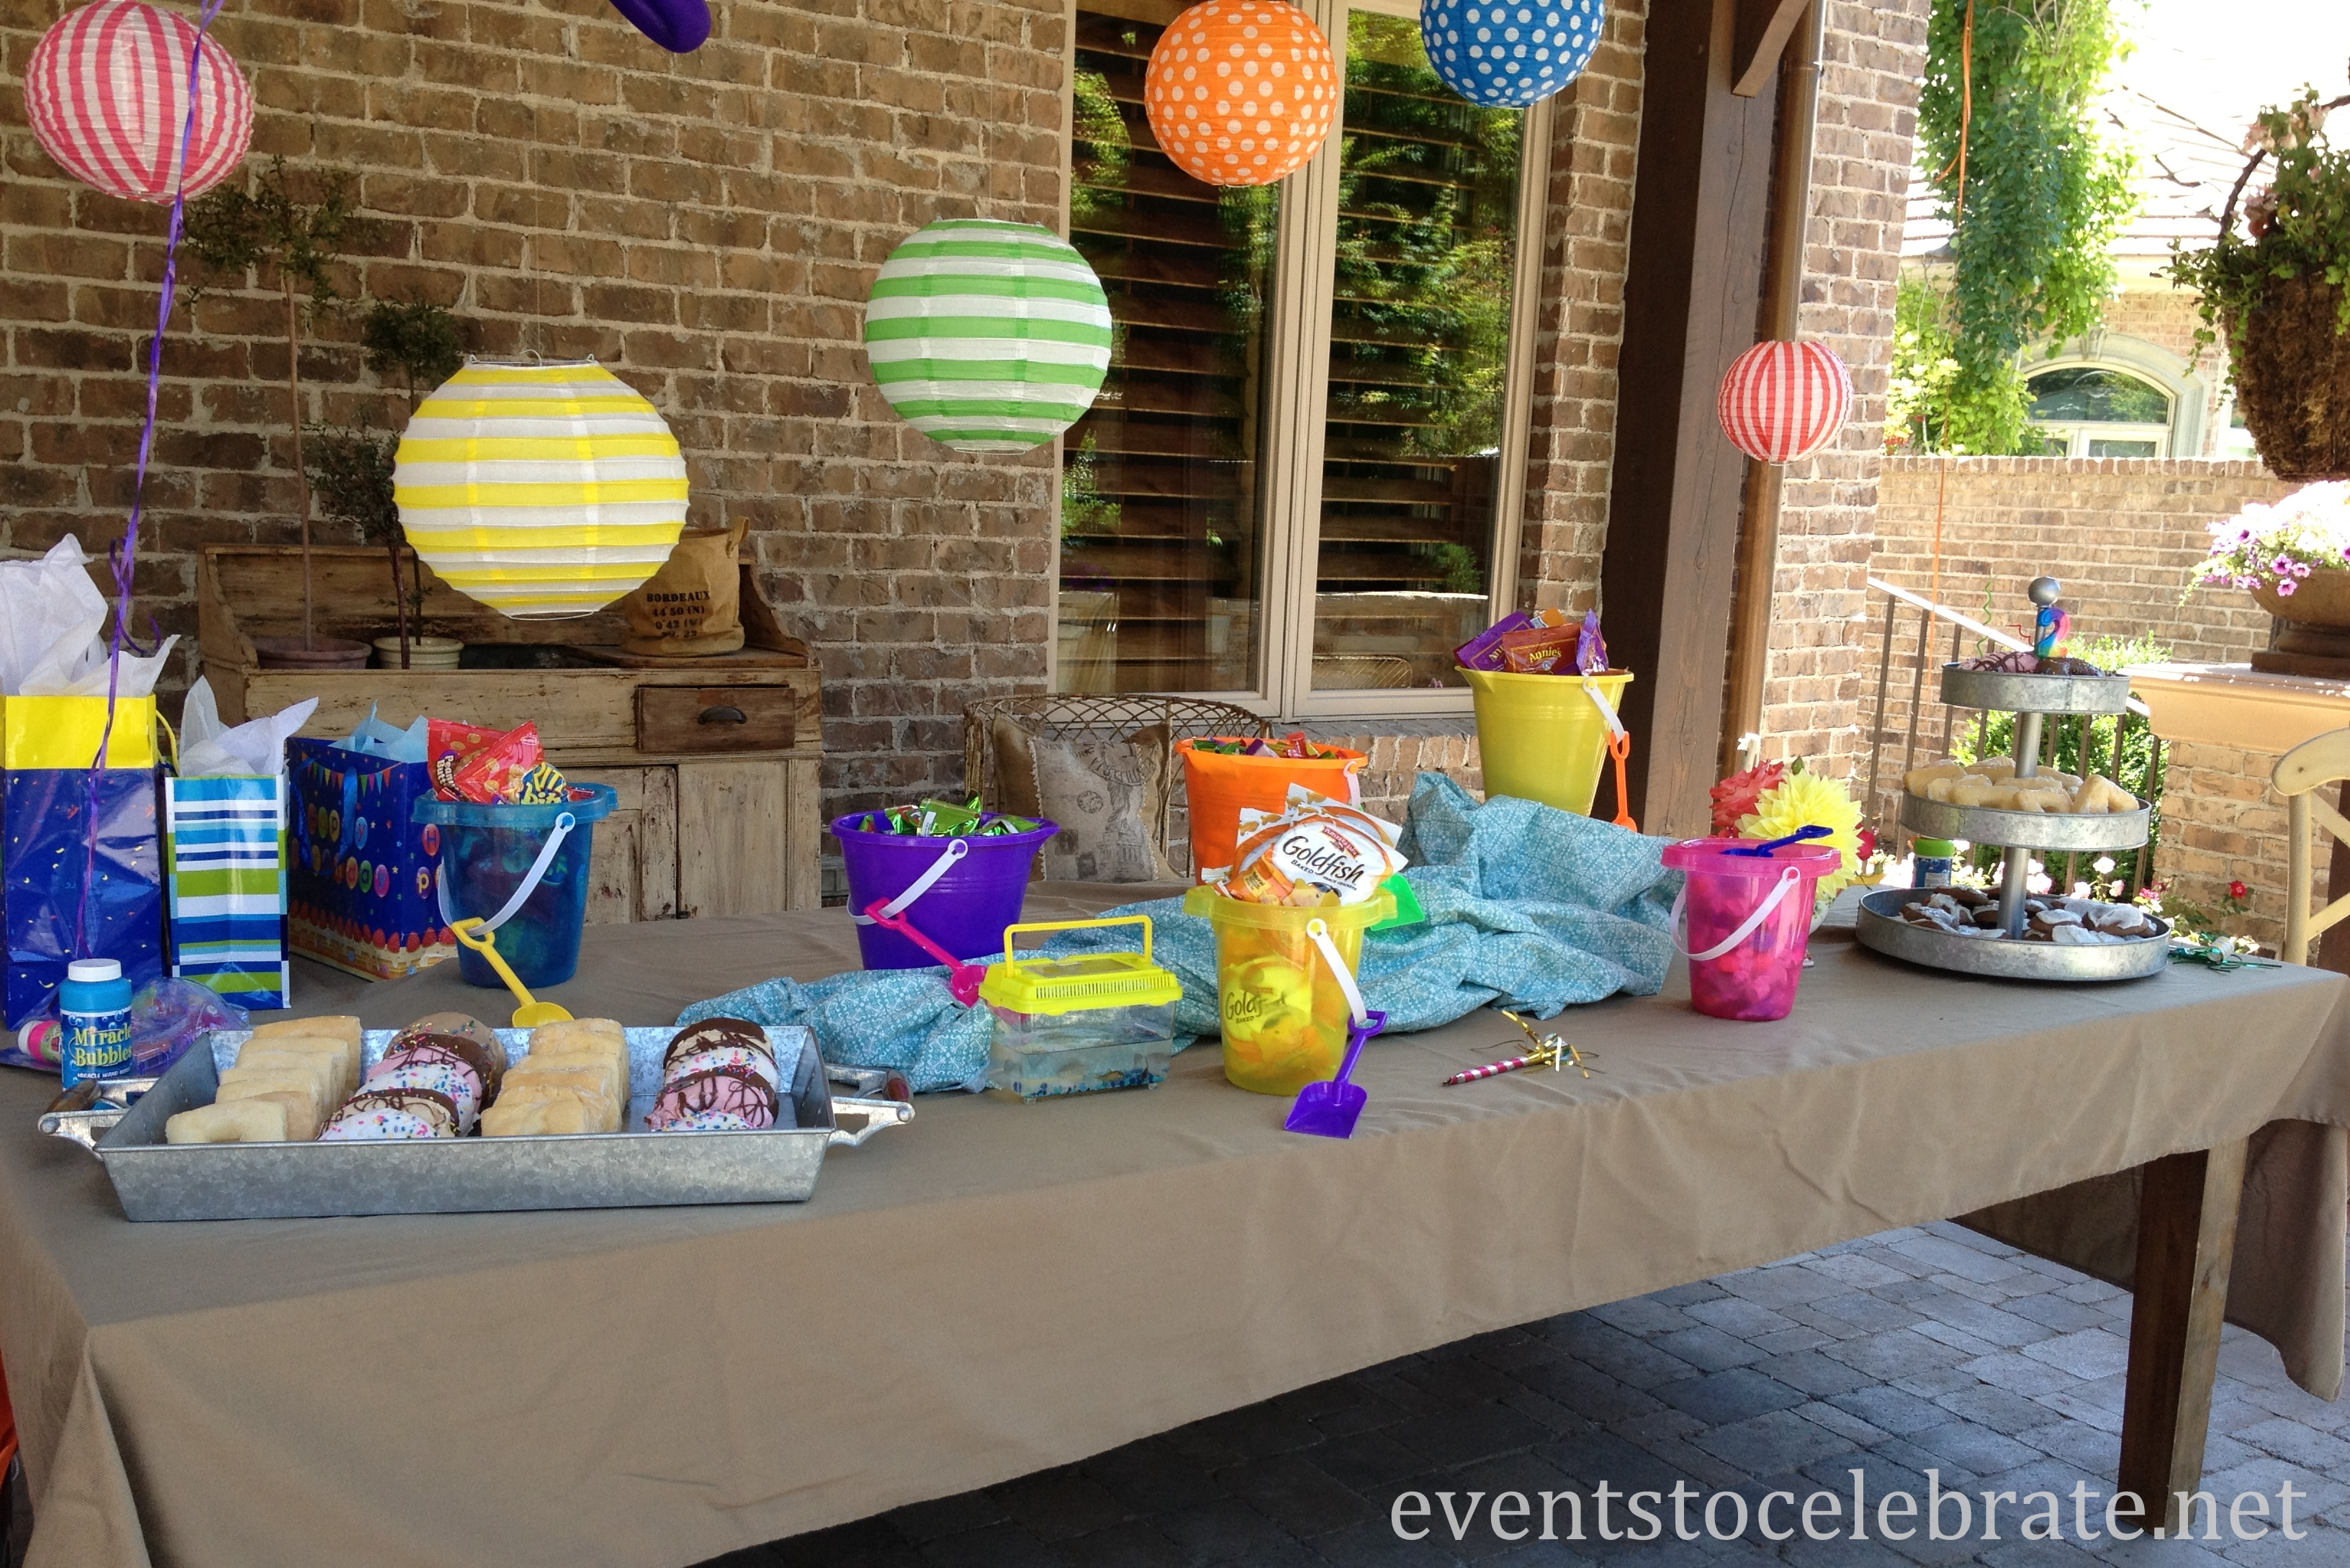 Table decoration for party - Swim Party Decorations Table Beach Balls Archives Events To Celebrate